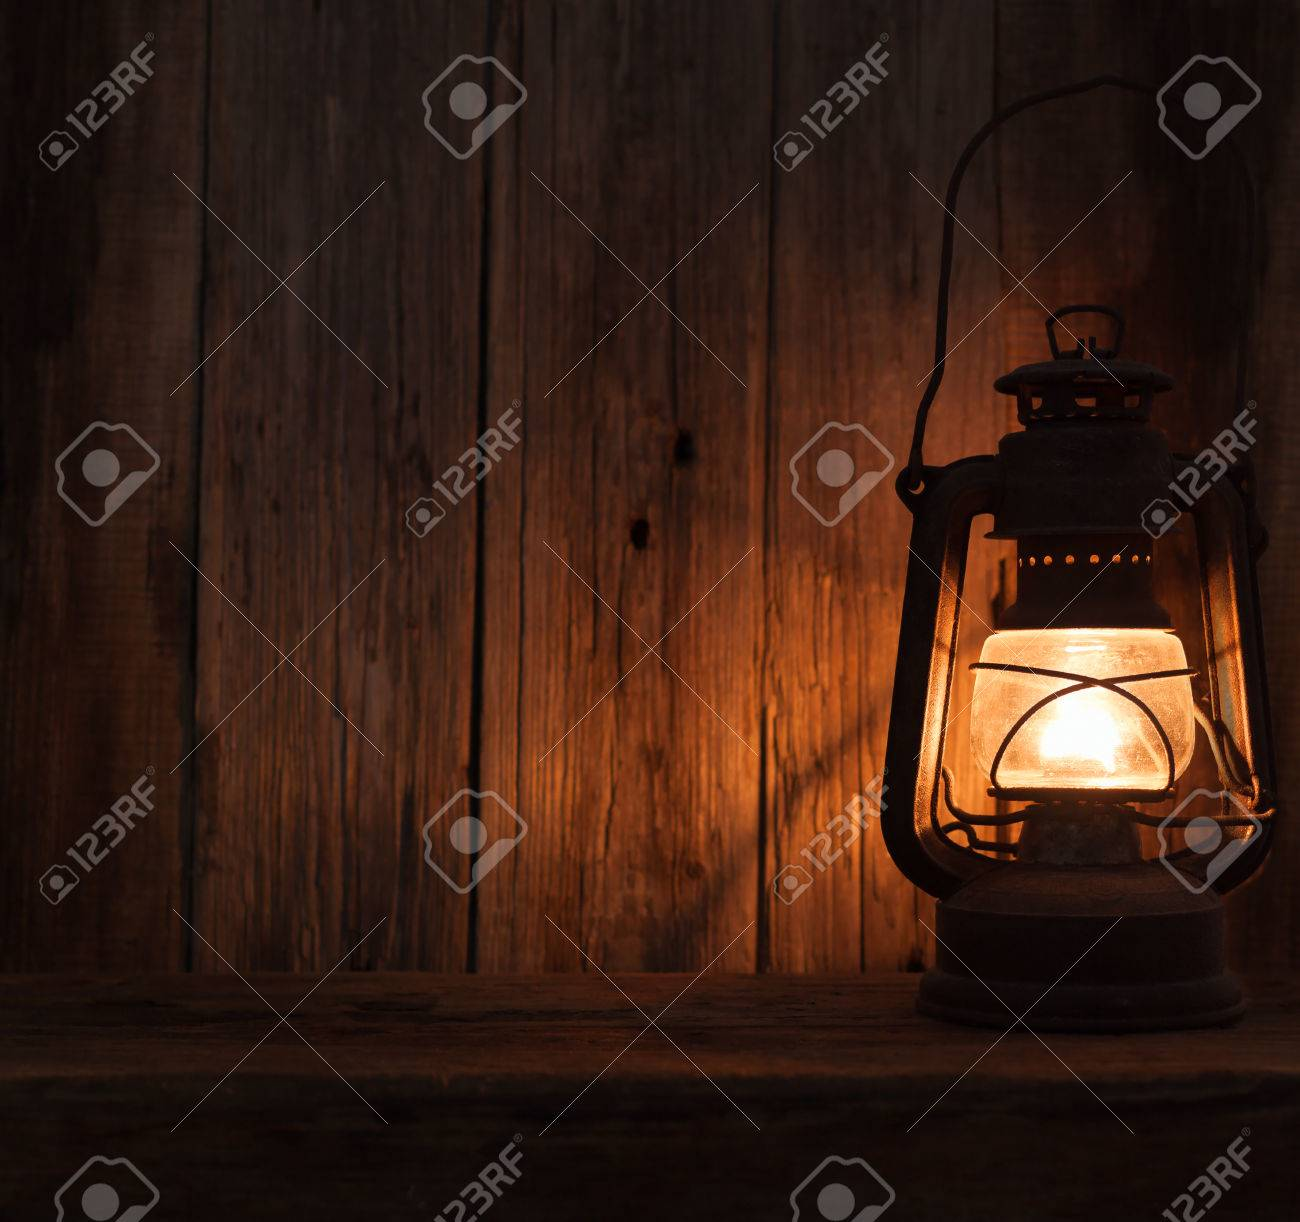 Lantern Lamp Light Dark Wooden Wall Table Background Stock Photo Picture And Royalty Free Image Image 39078207